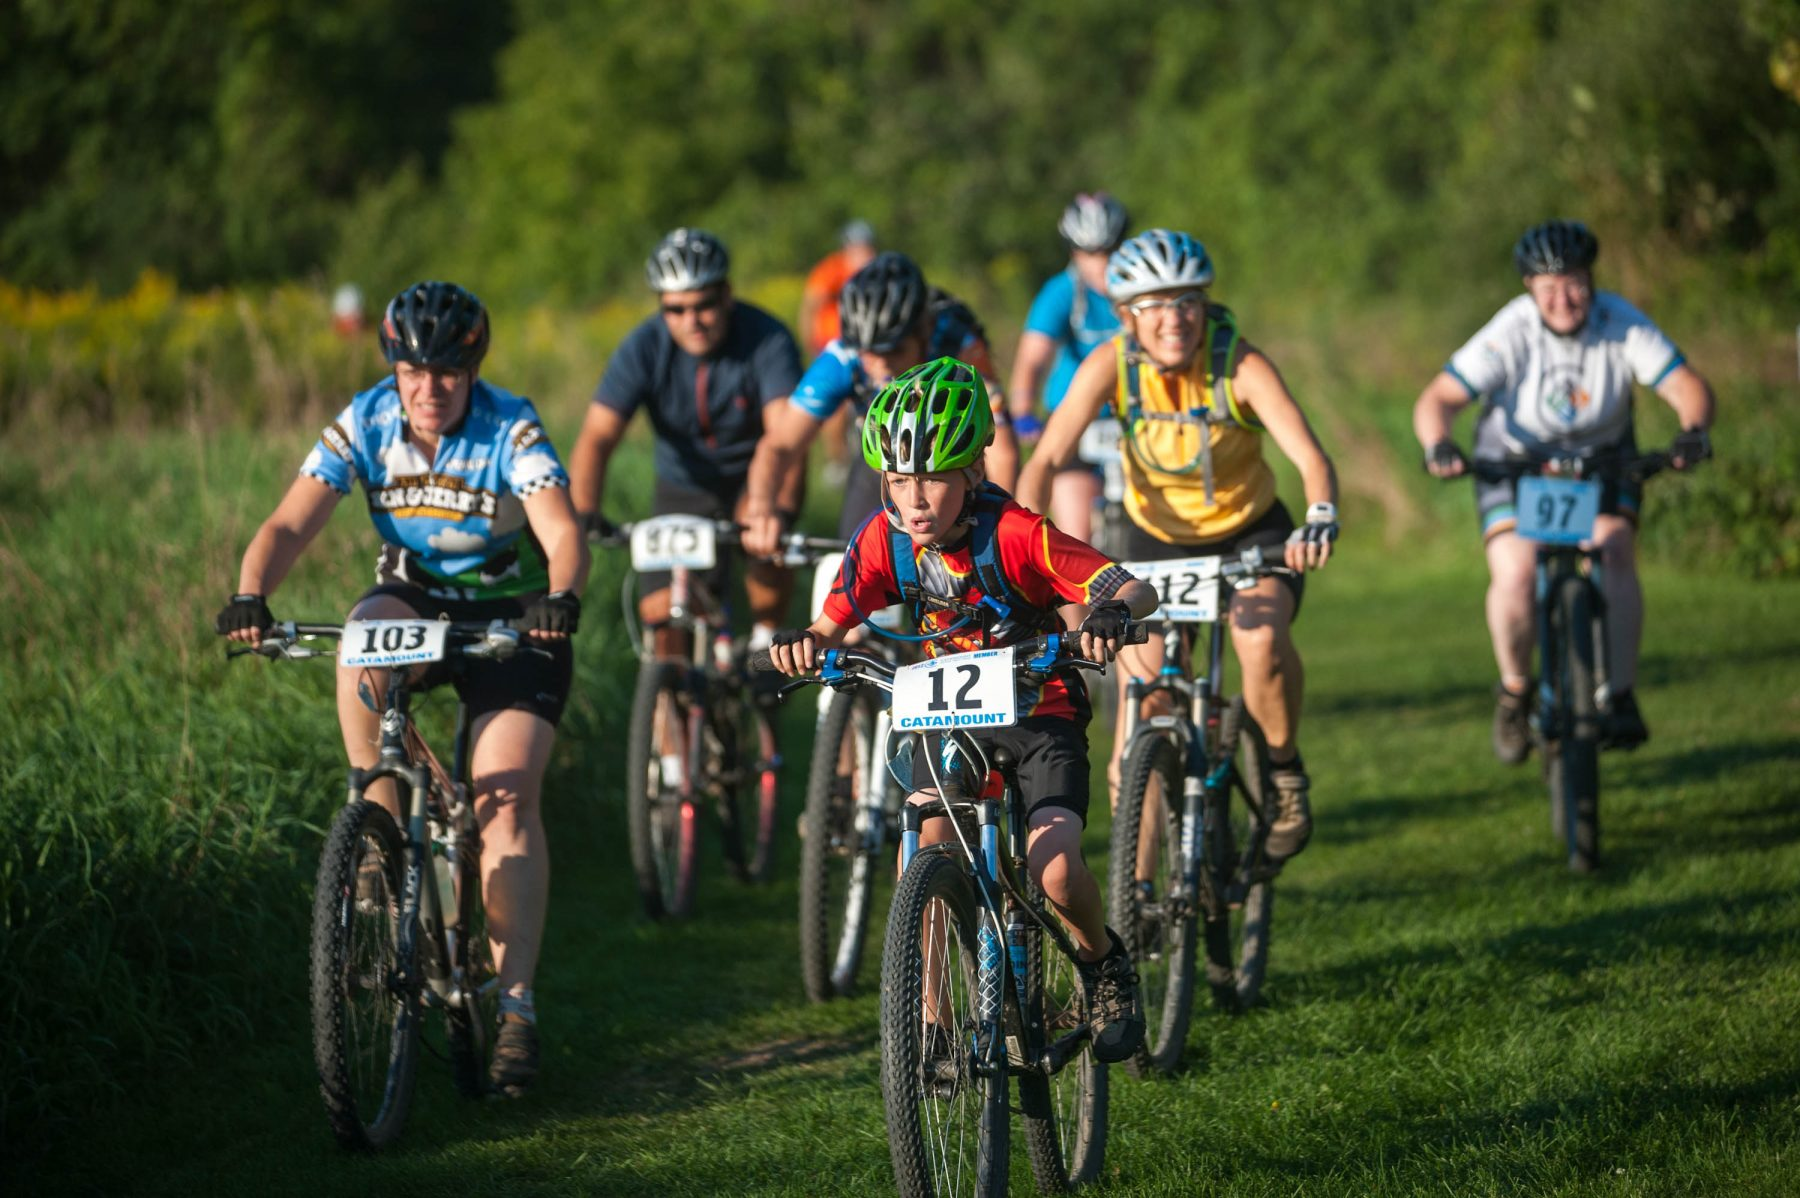 Catamount Outdoor Family Center Adult Mountain Bike Races